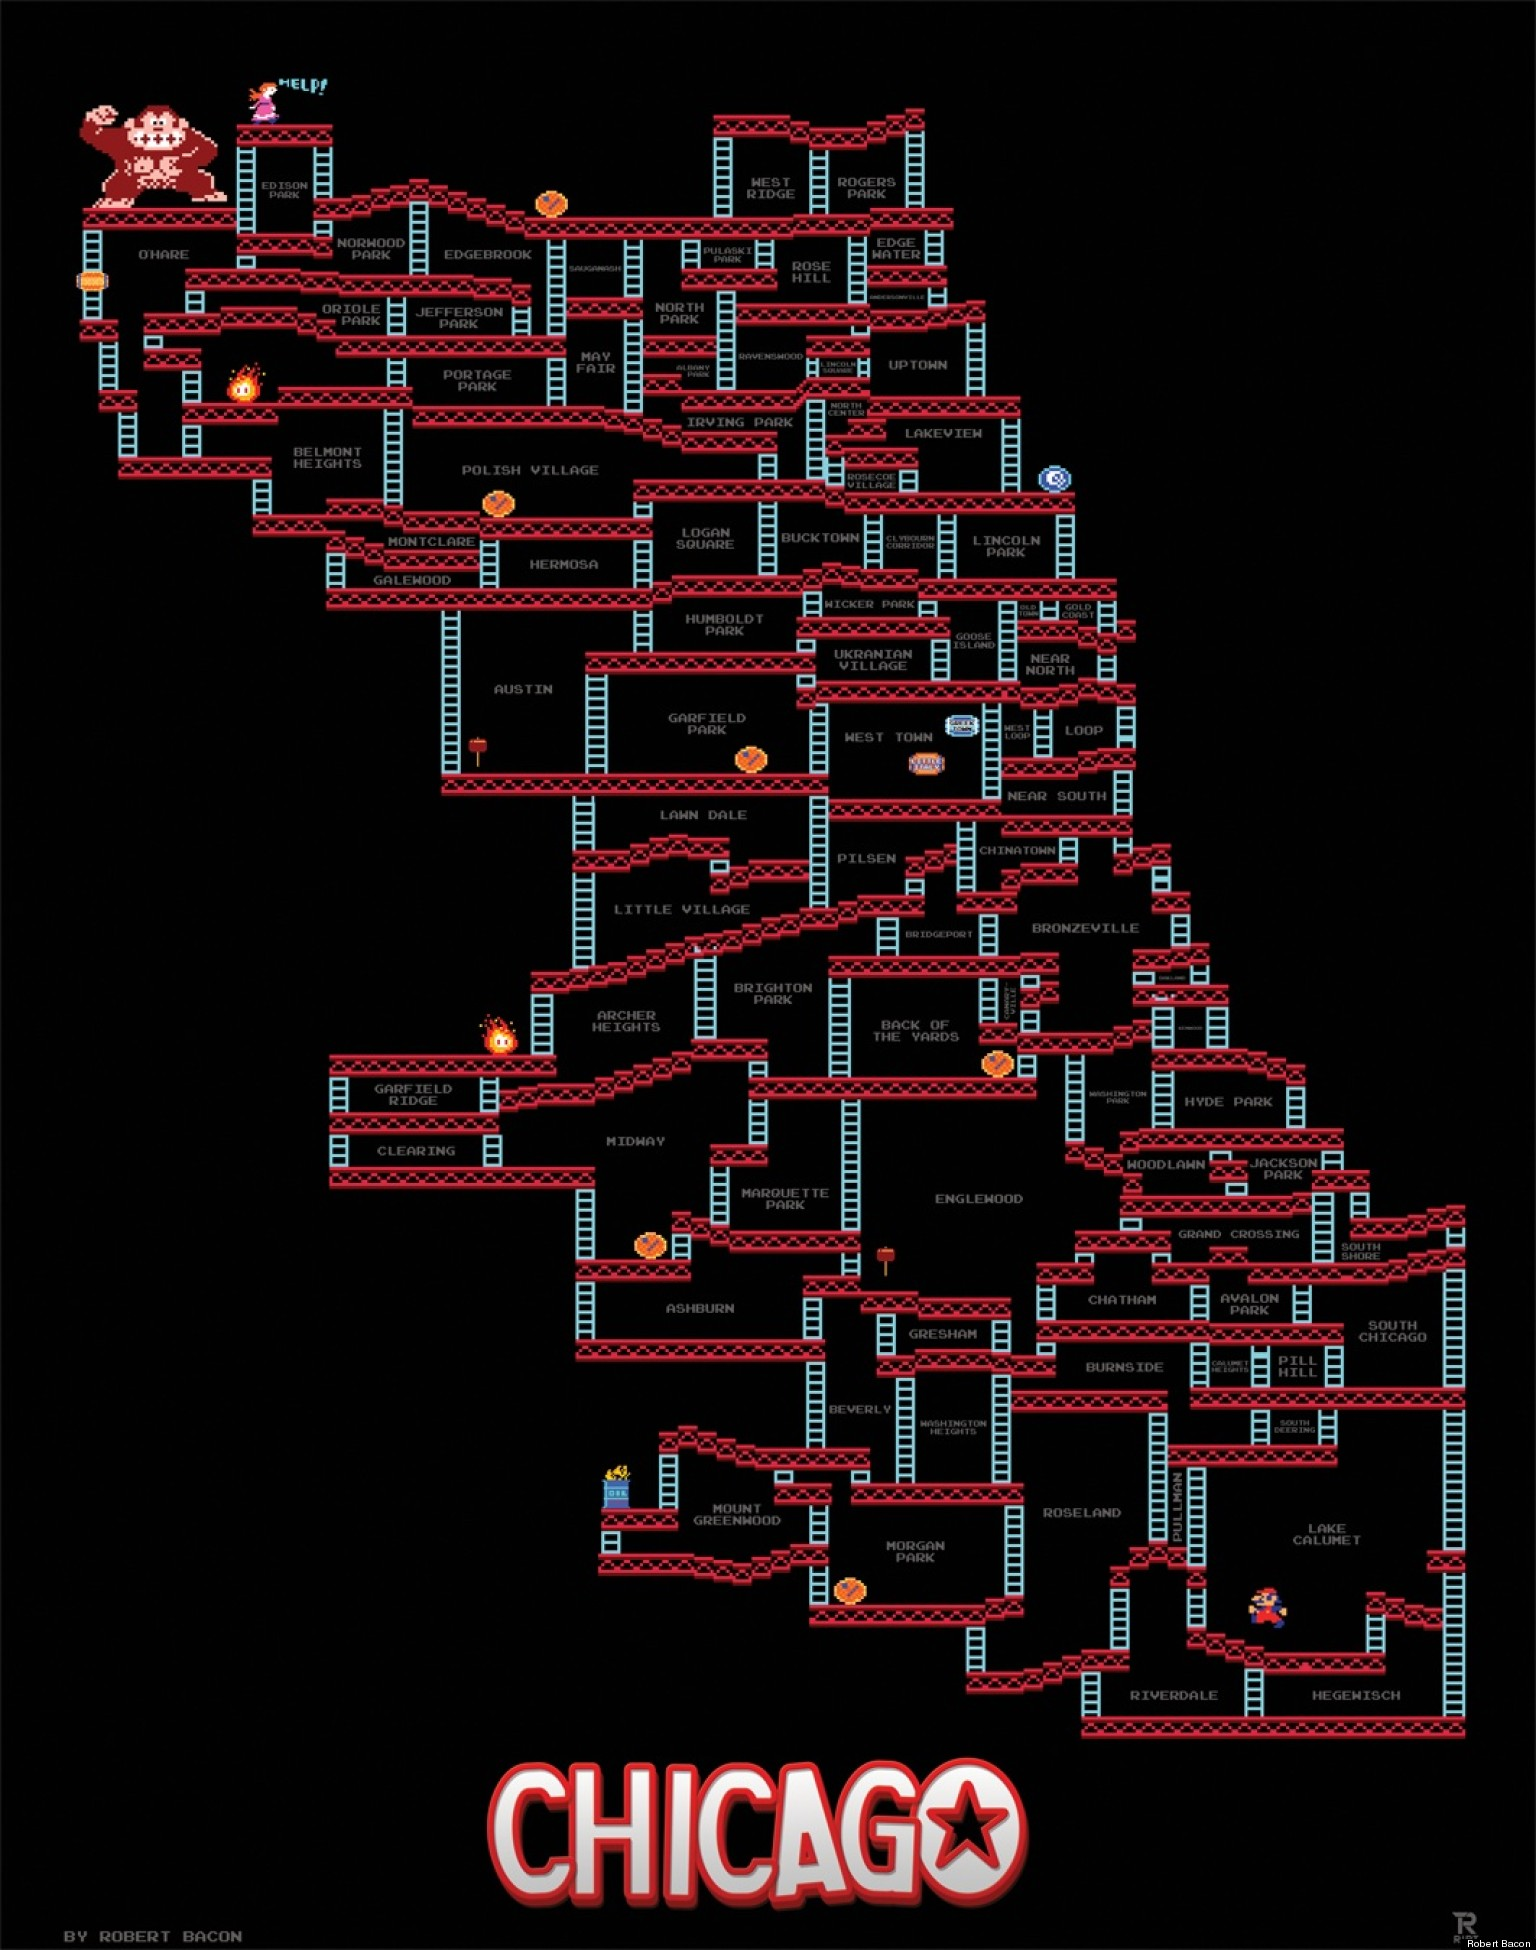 Doctor Symbol Hd Wallpaper Donkey Kong Chicago Map Neighborhoods Re Imagined In